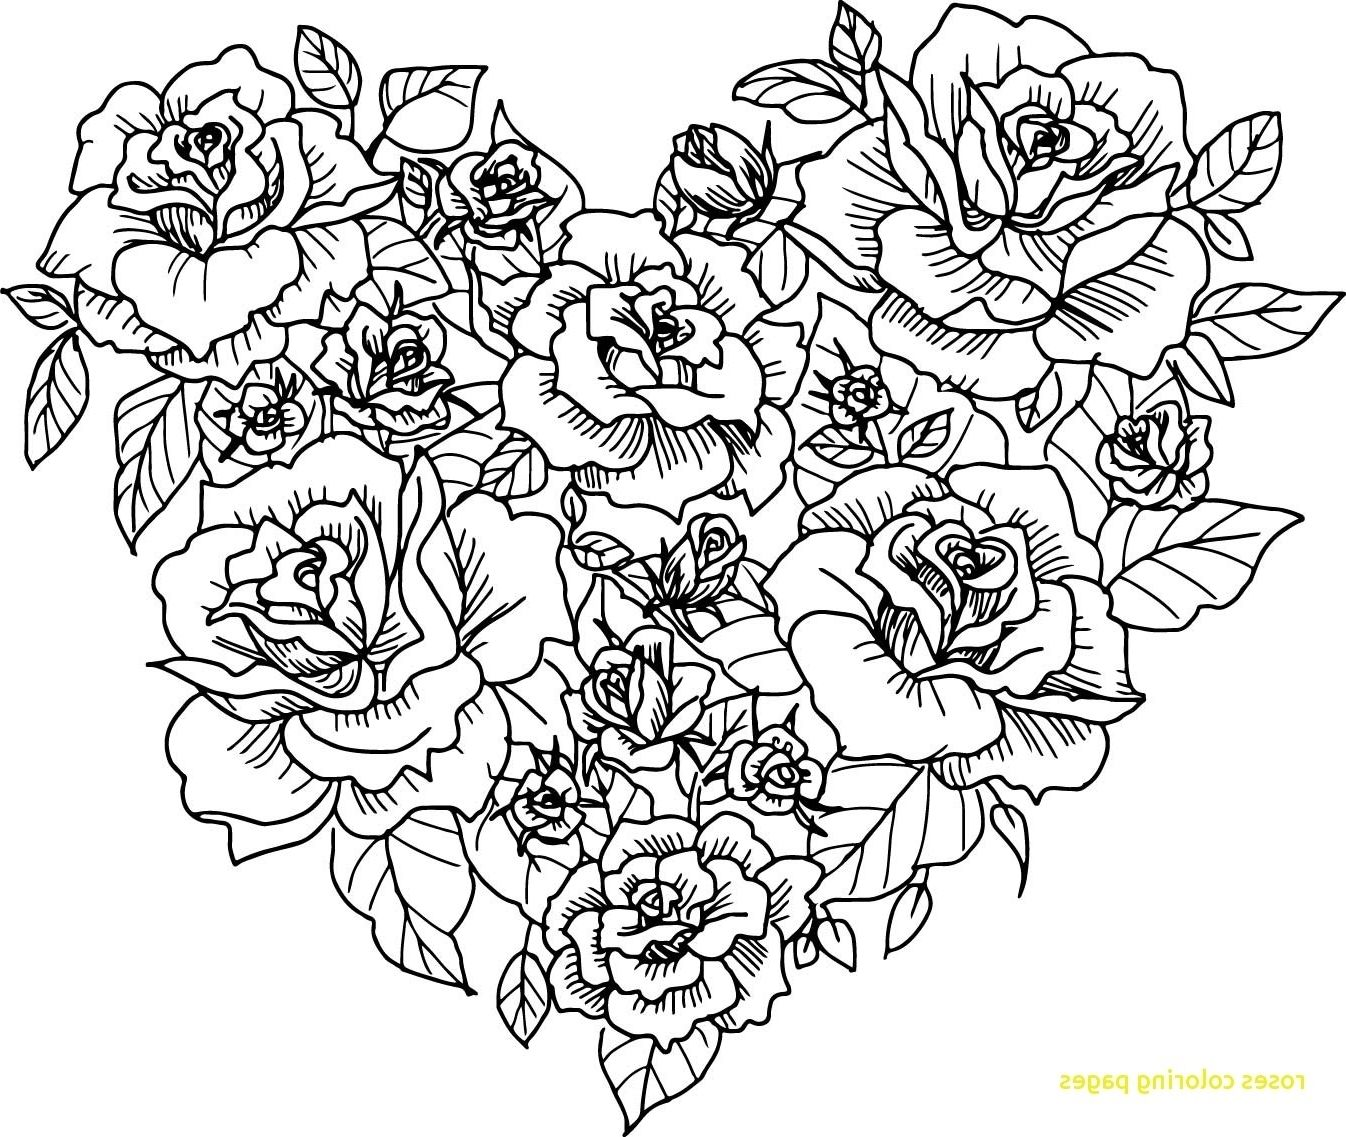 roses coloring pages printable free printable roses coloring pages for kids coloring roses printable pages 1 1